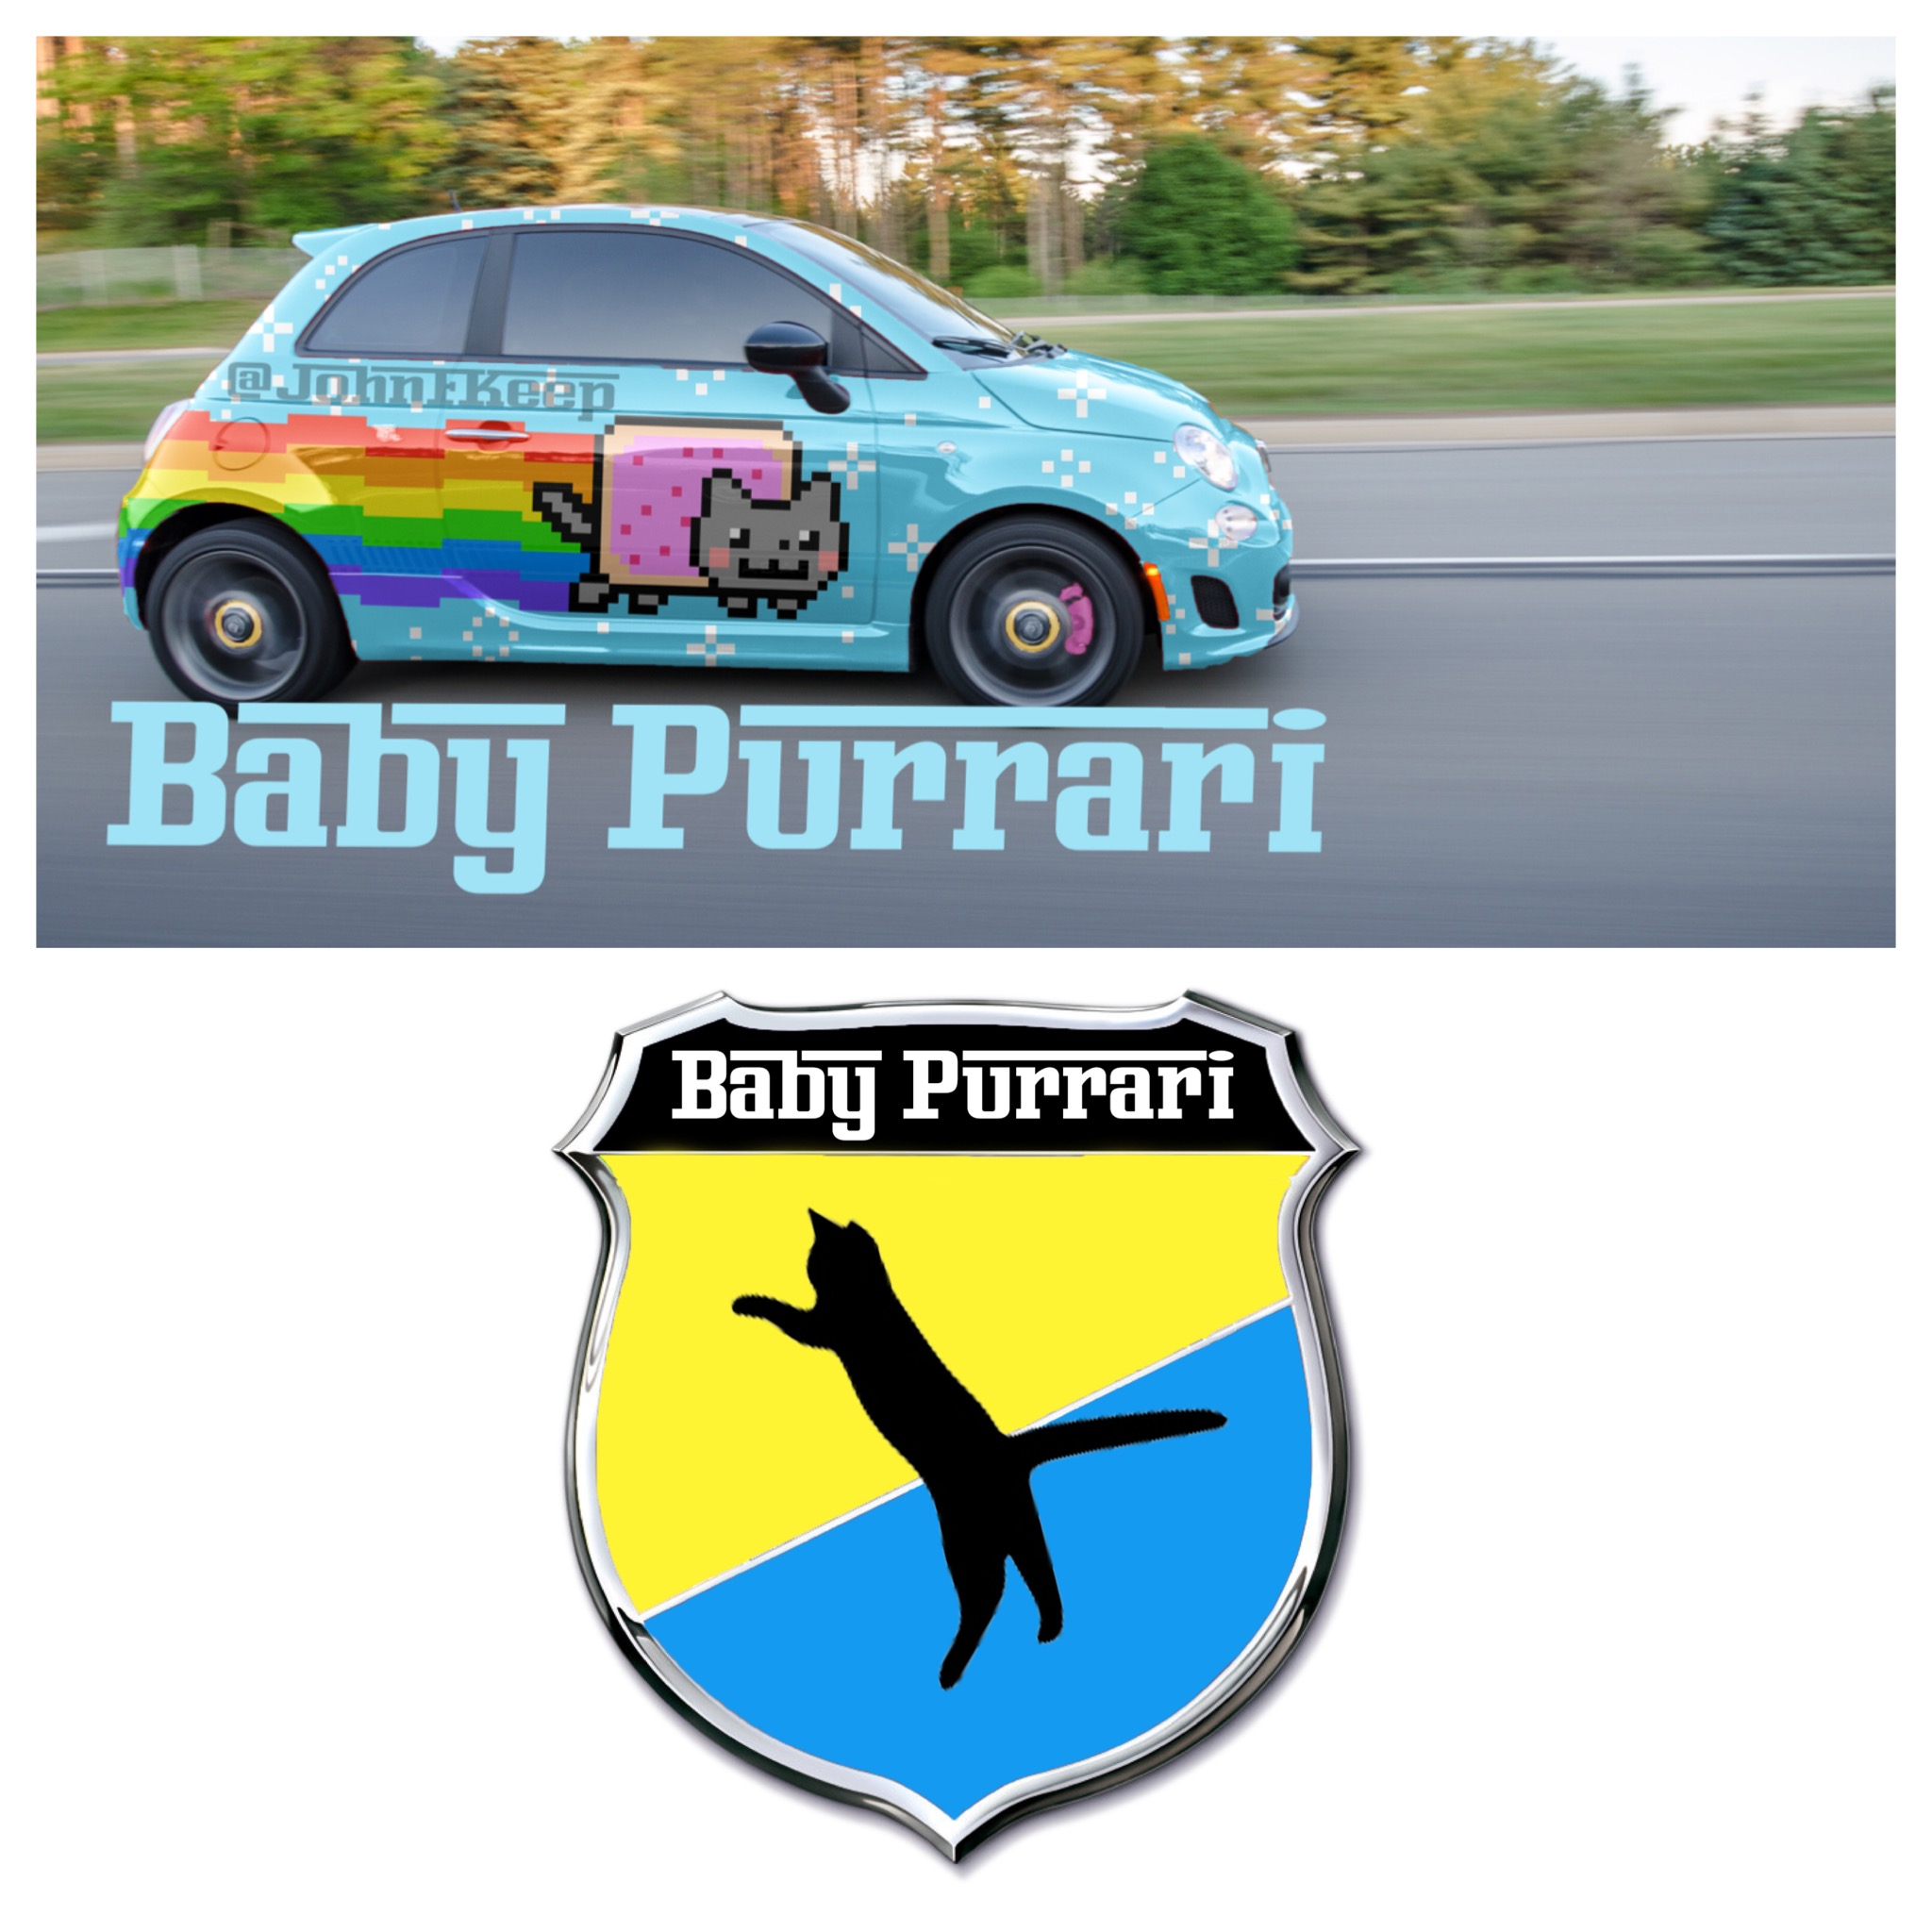 Baby Purrari Abarth Rendering Is Digitally Trolling ...